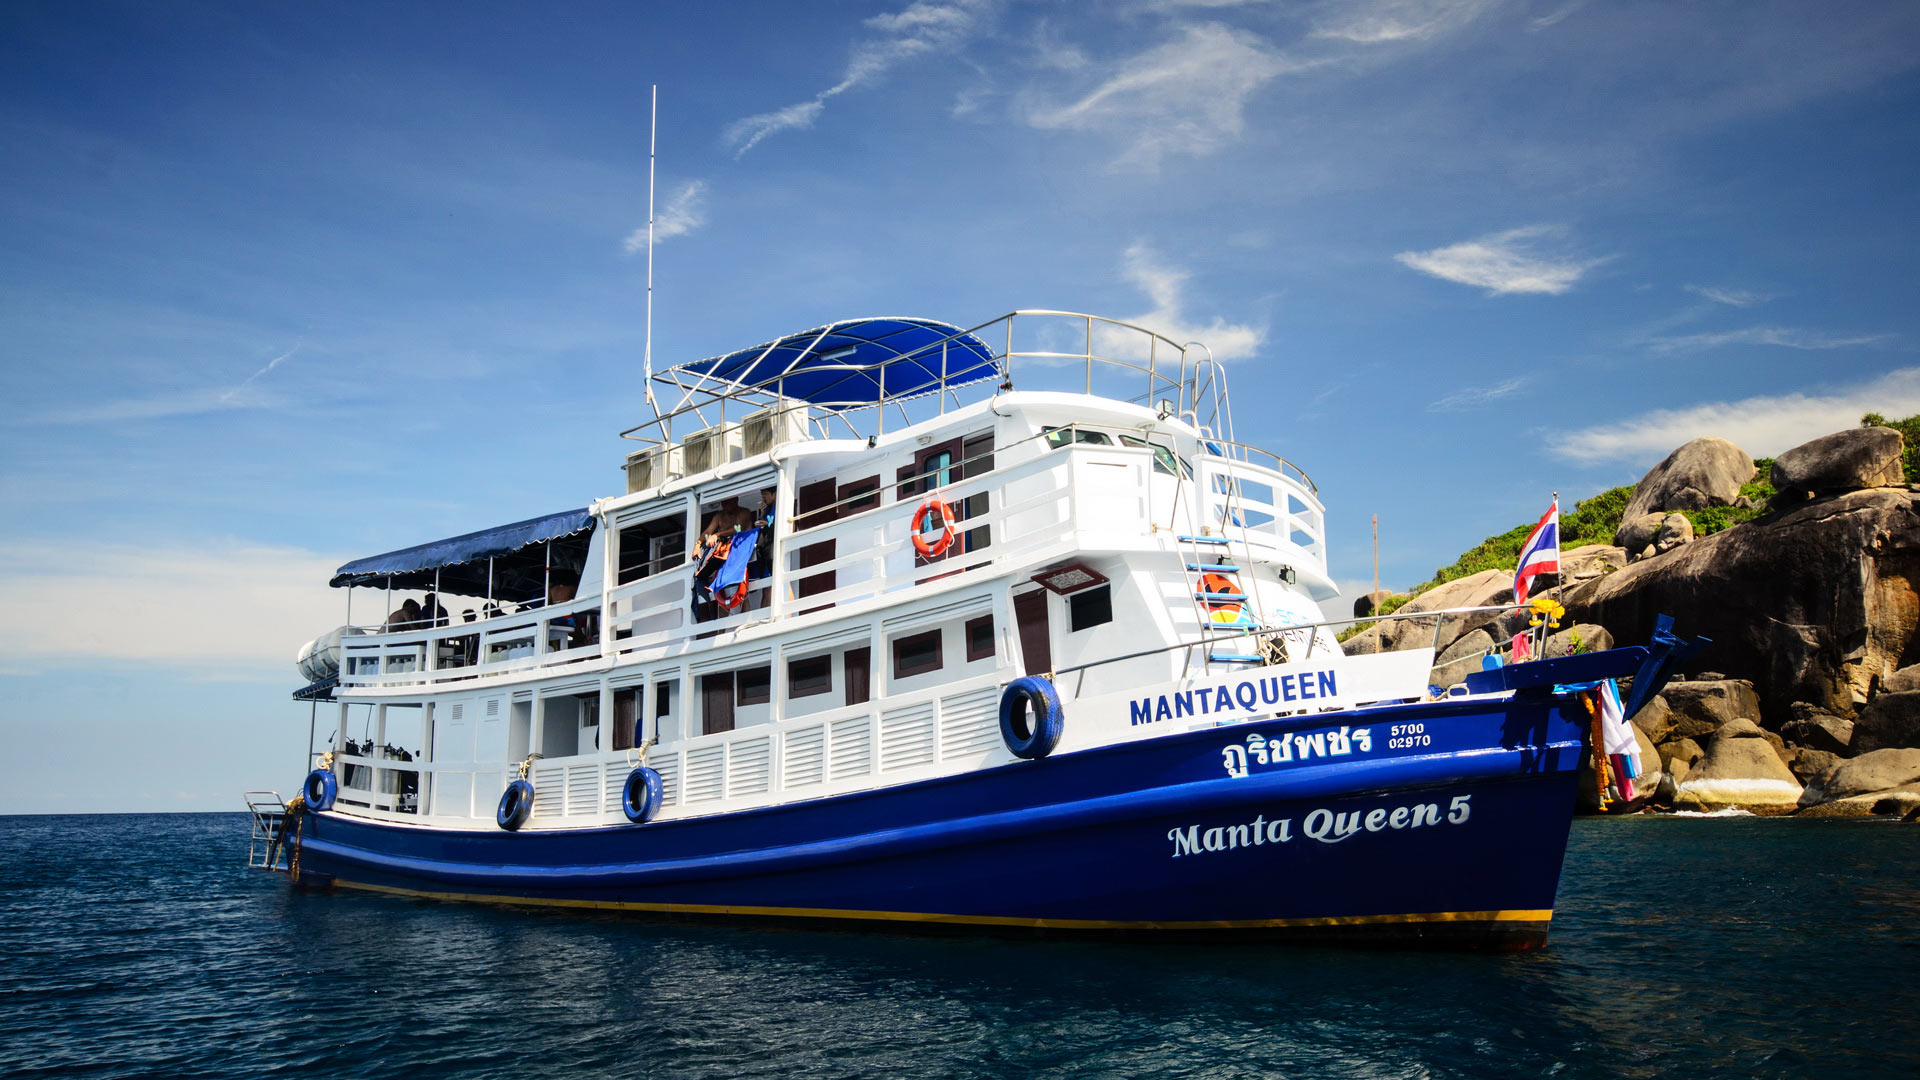 Manta Queen vife is a 4 days Similan islands diving liveaboard